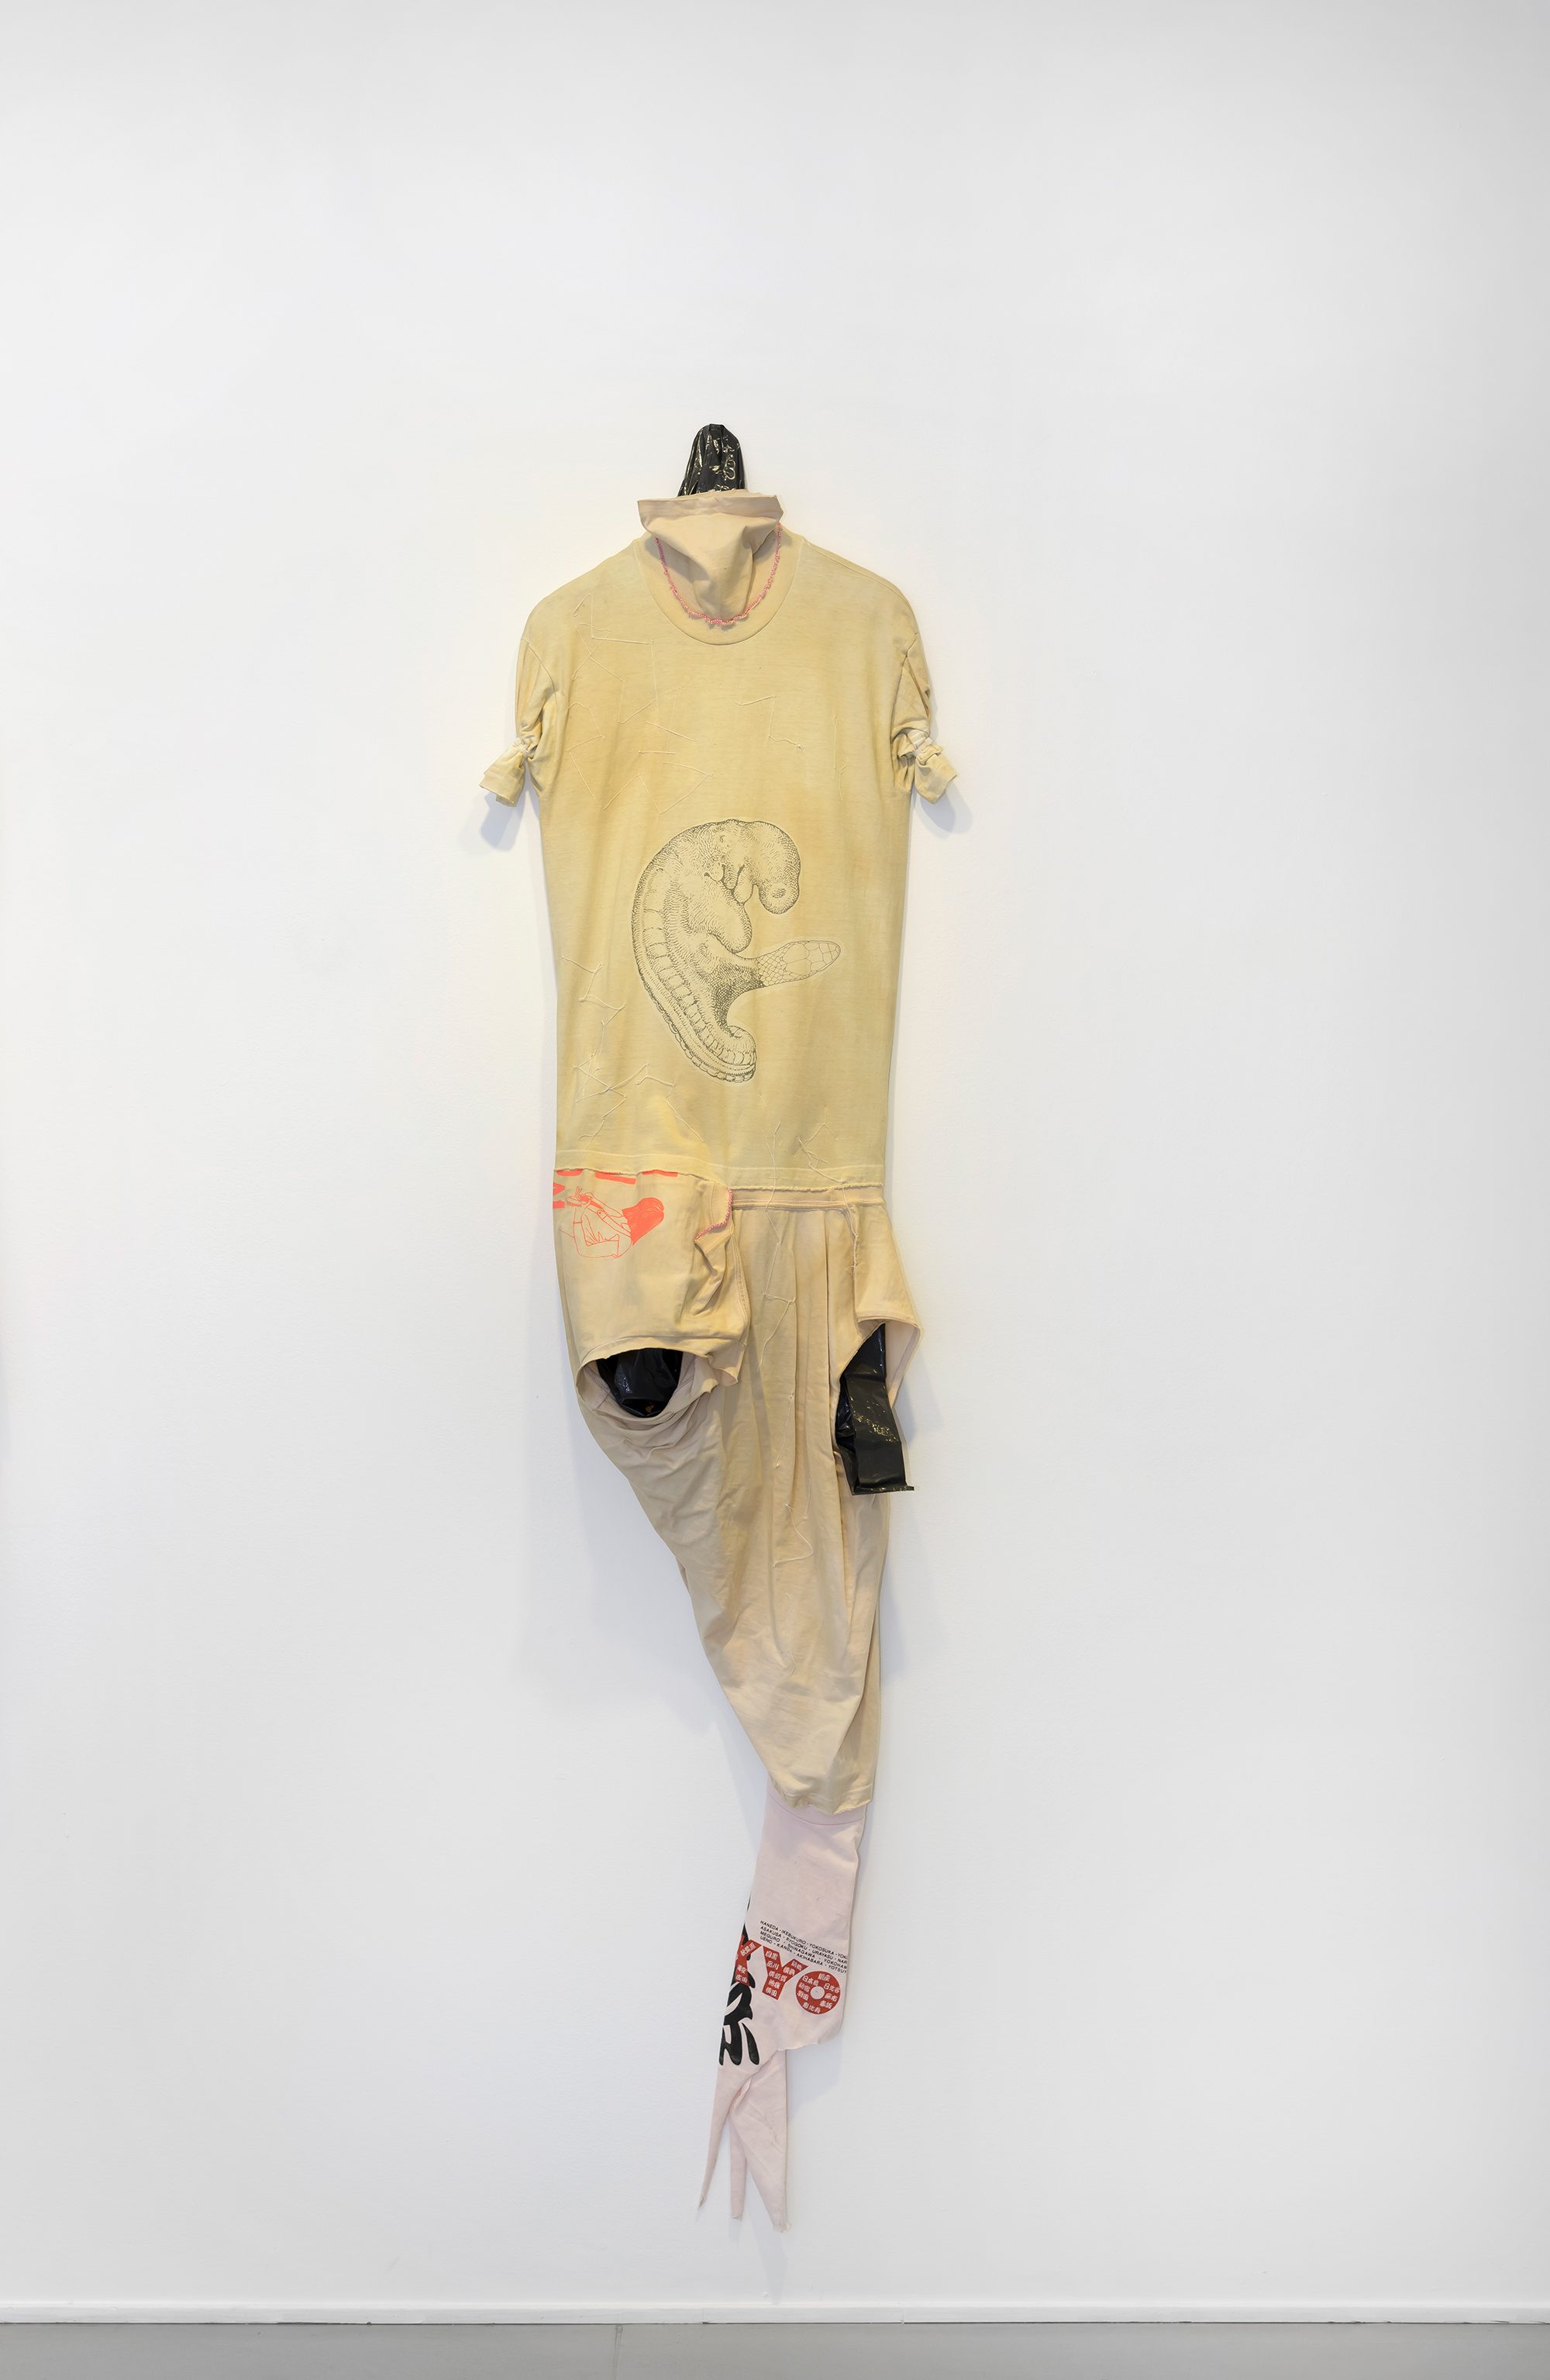 Leif Holmstrand, Costume for a New Tail (It's a Girl) (2015), textile wall sculpture:T-shirt fabric, print depicting human fetus plus snake head,garbage bag plastic, pearls et cetera. Foto: Øystein Thorvaldsen